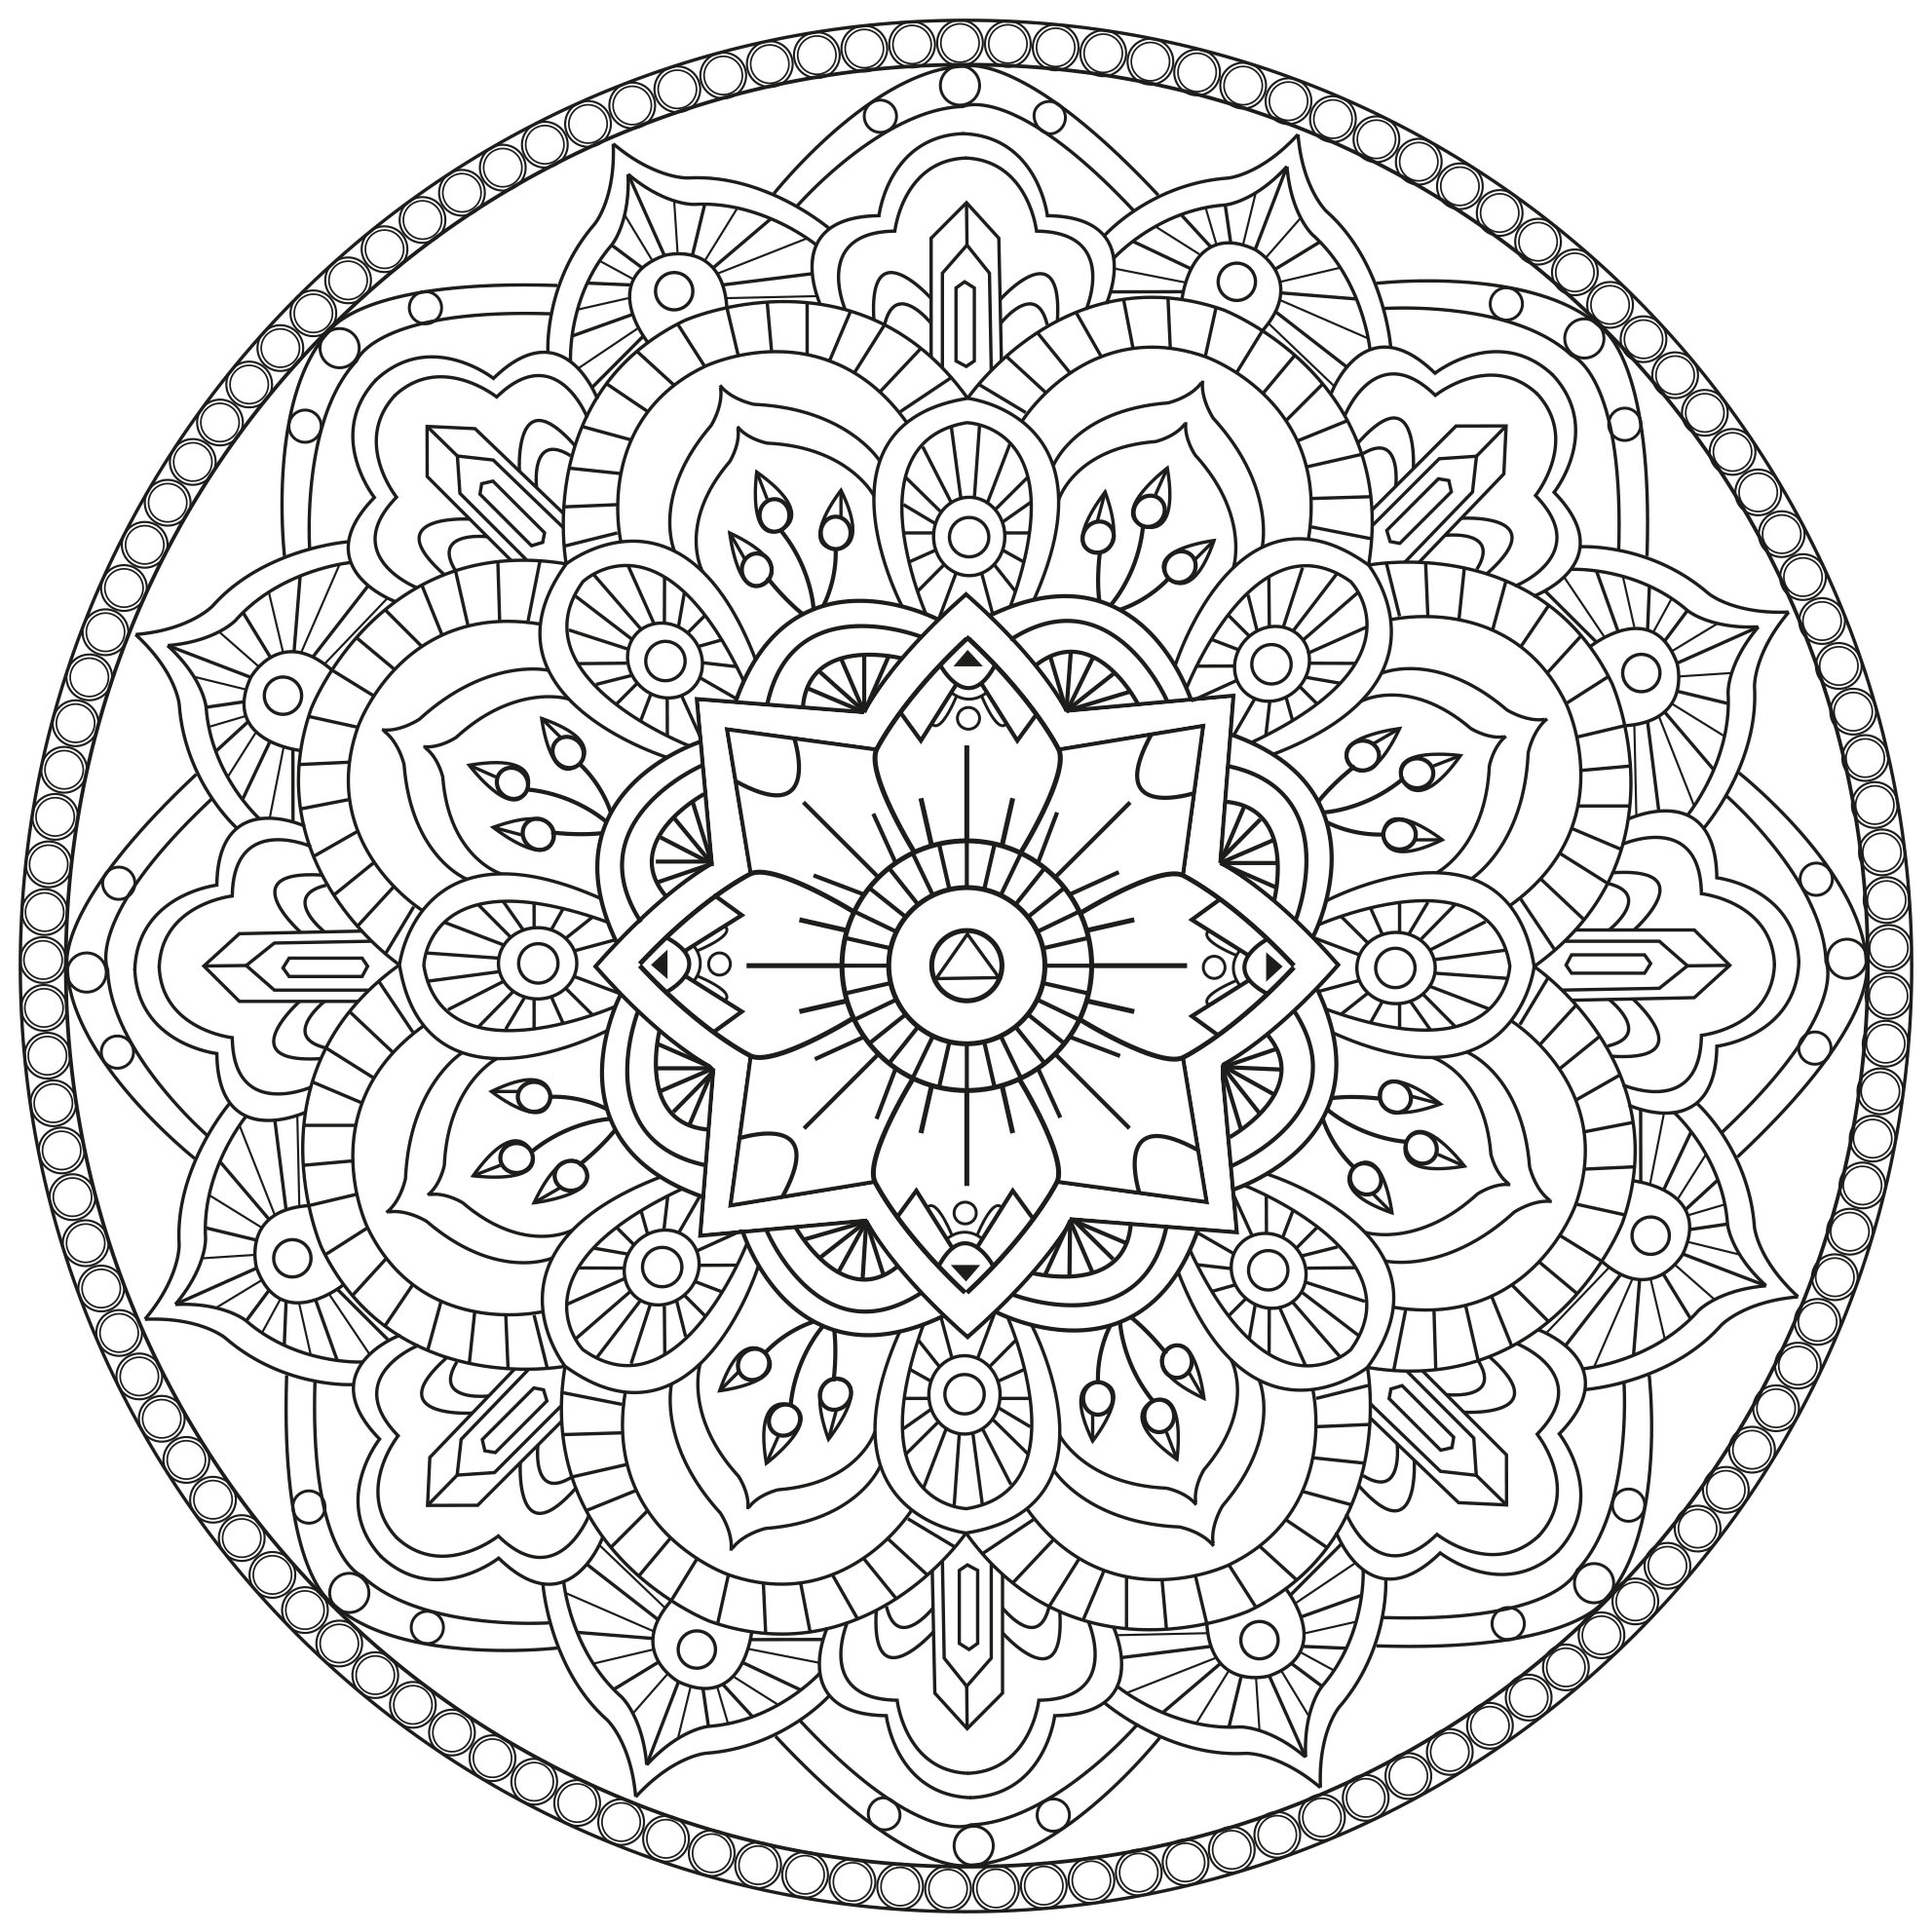 mandala a colorier gratuit fleurs traits reguliers mandalas difficiles pour adultes 100. Black Bedroom Furniture Sets. Home Design Ideas